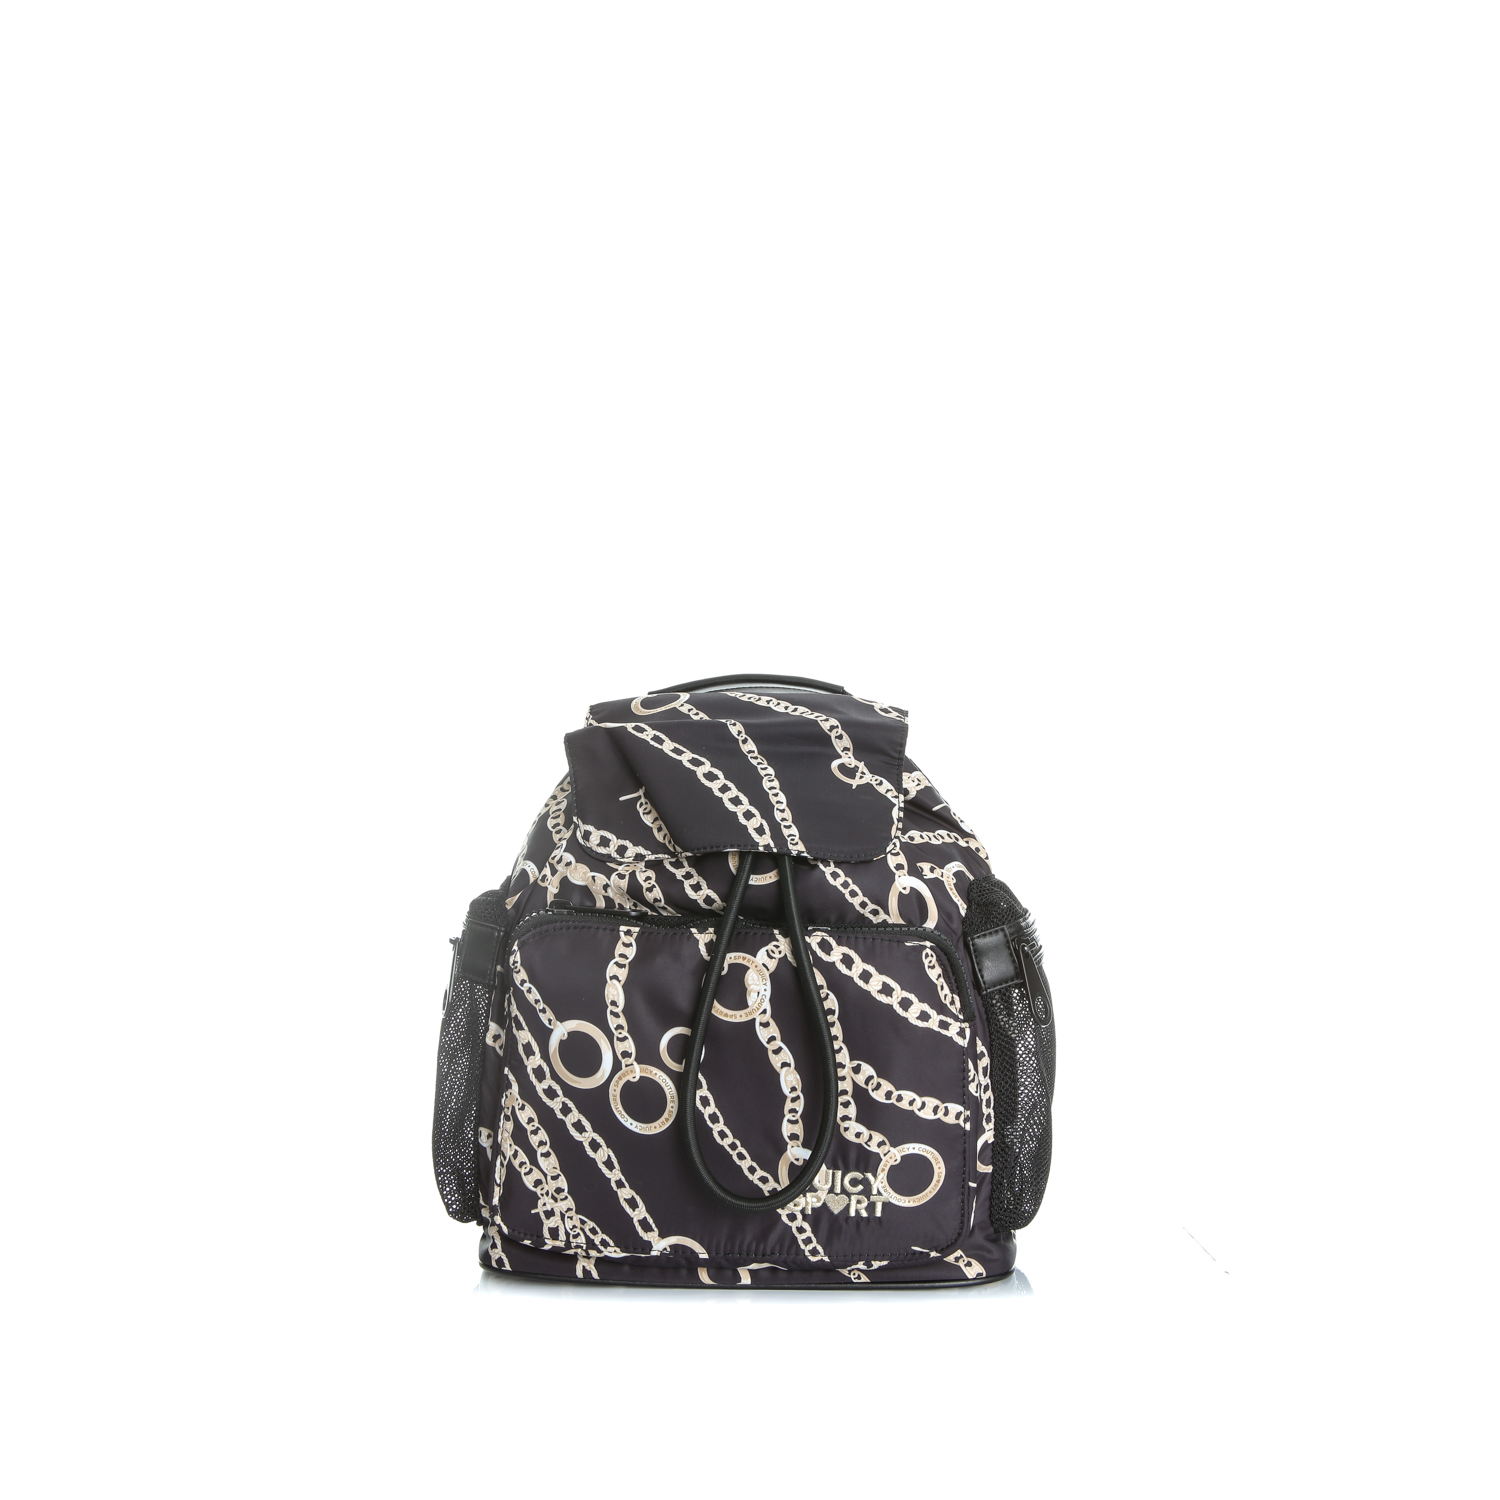 JUICY COUTURE – Γυναικείο backpack JUICY SPORT CHAIN μαύρο 1474554.0-00W1